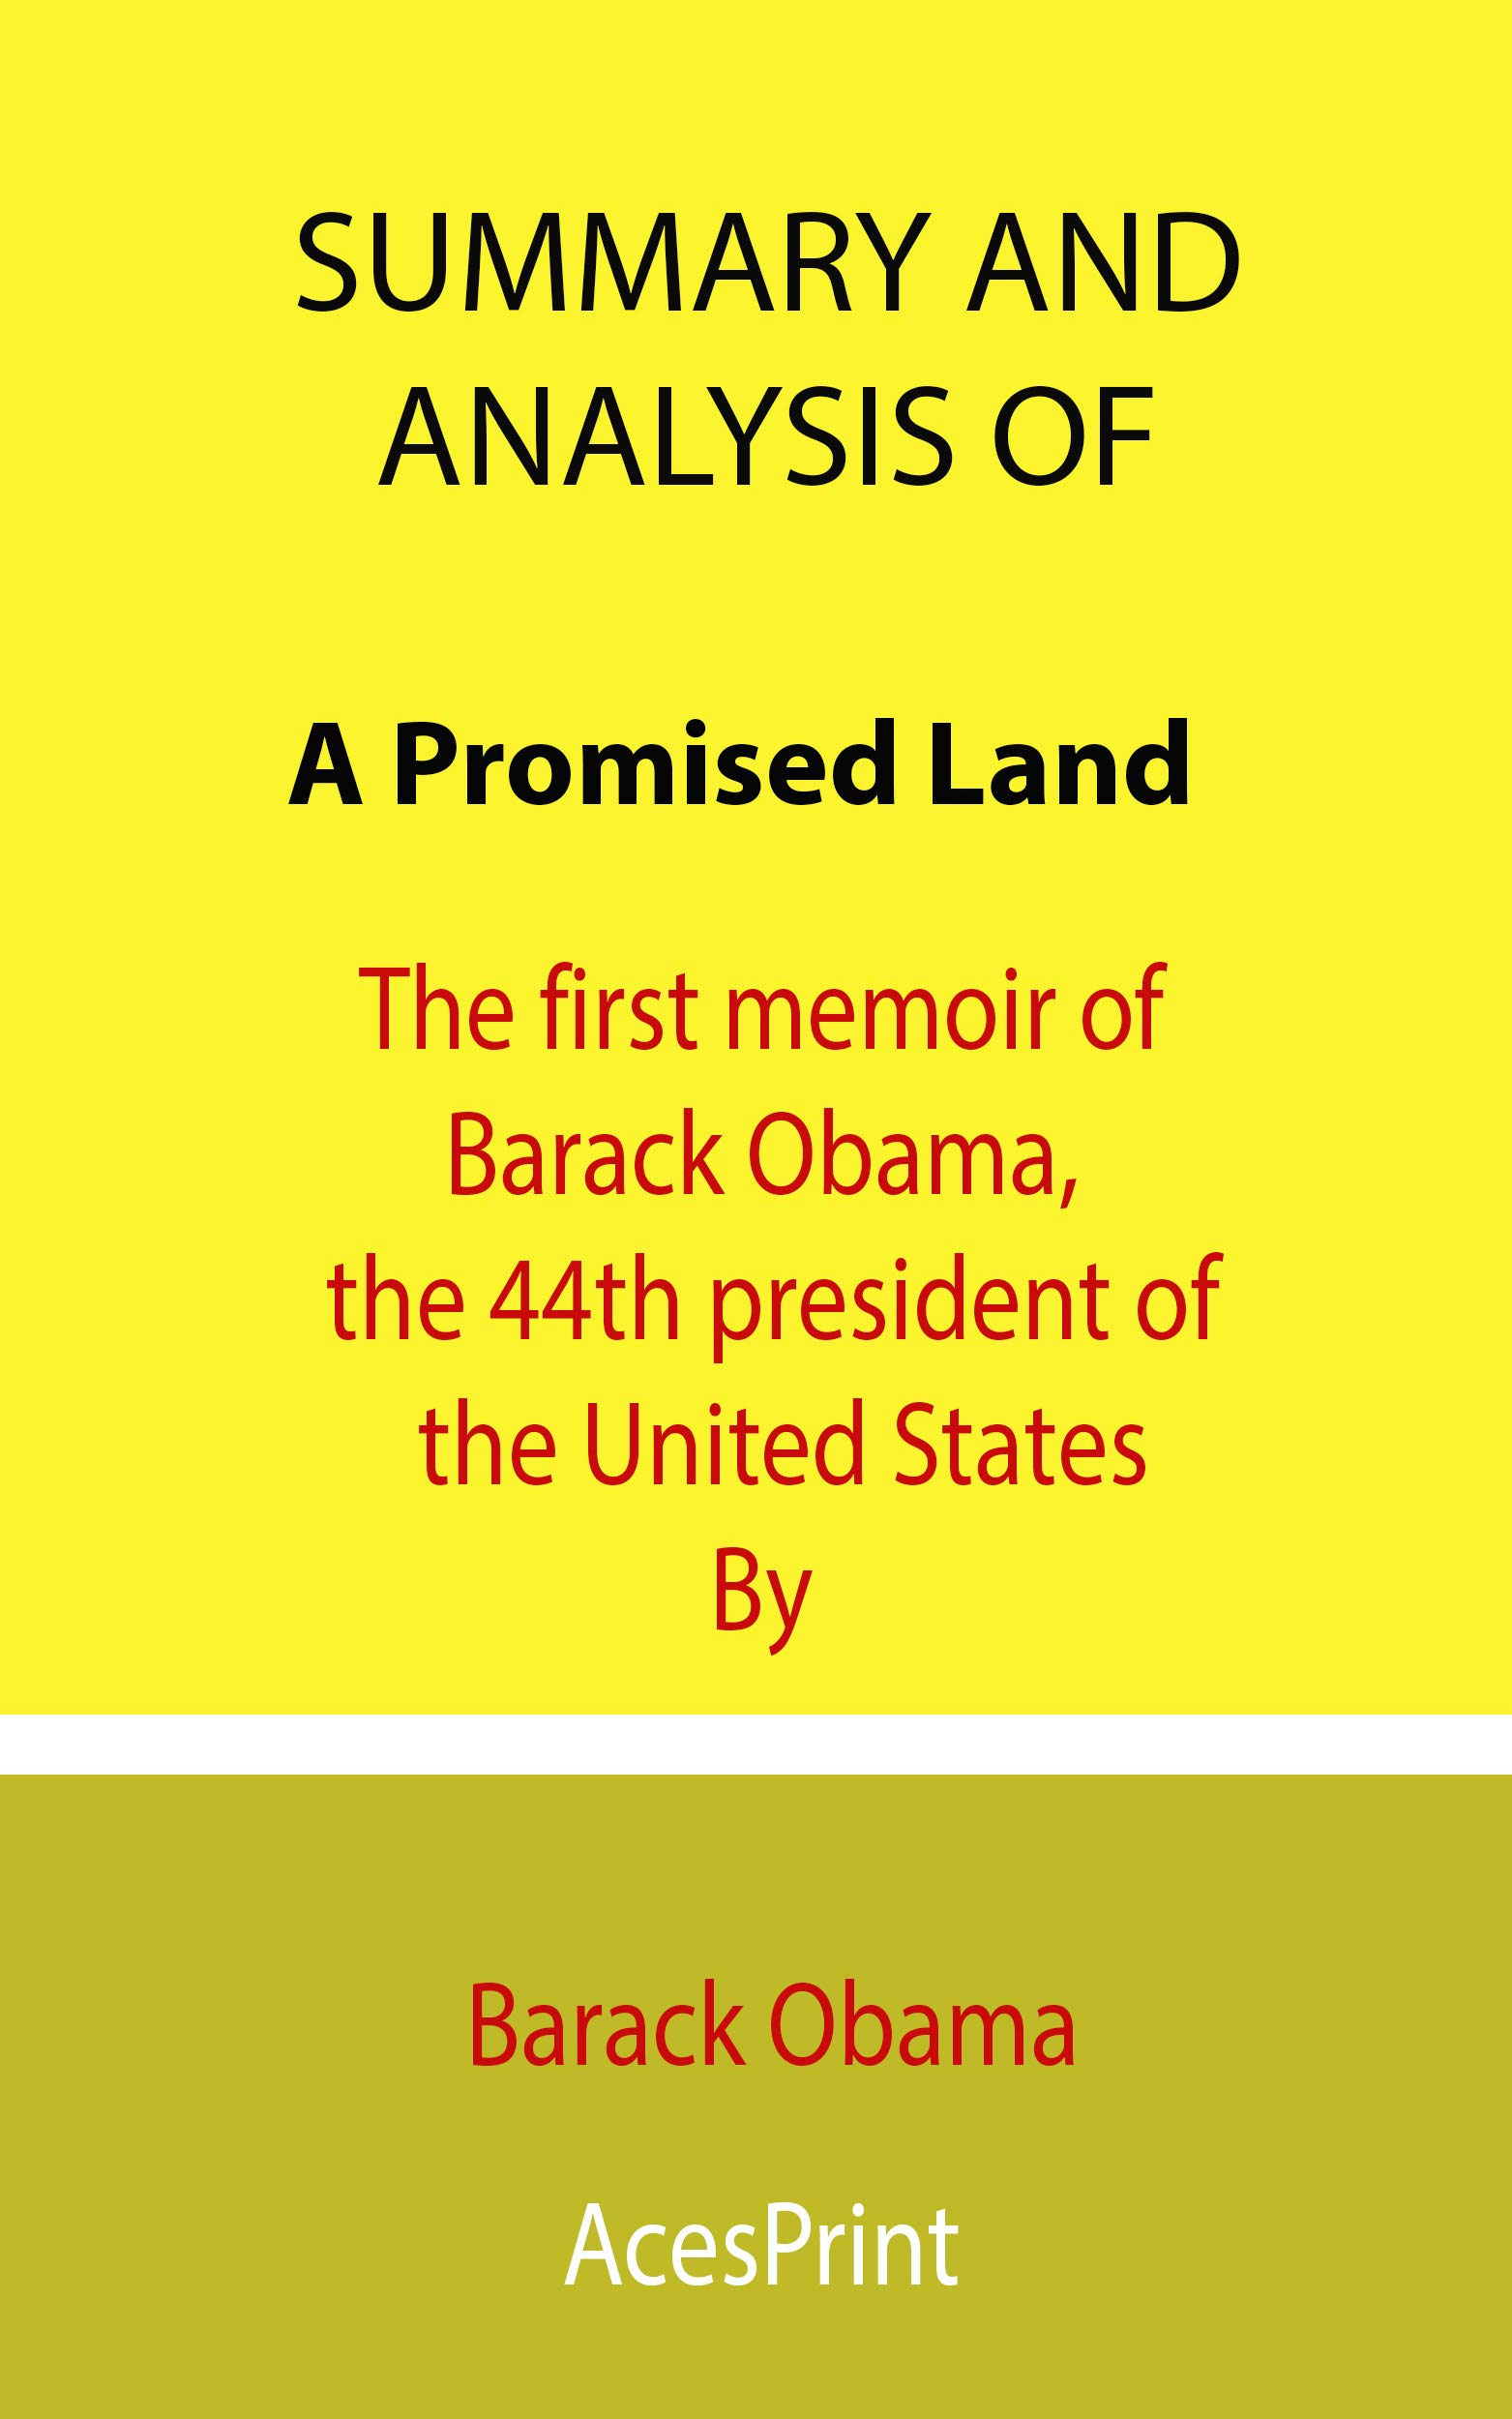 Summary and Analysis of A Promised Land: The first memoir of Barack Obama, the 44th president of the United States By Barack Obama